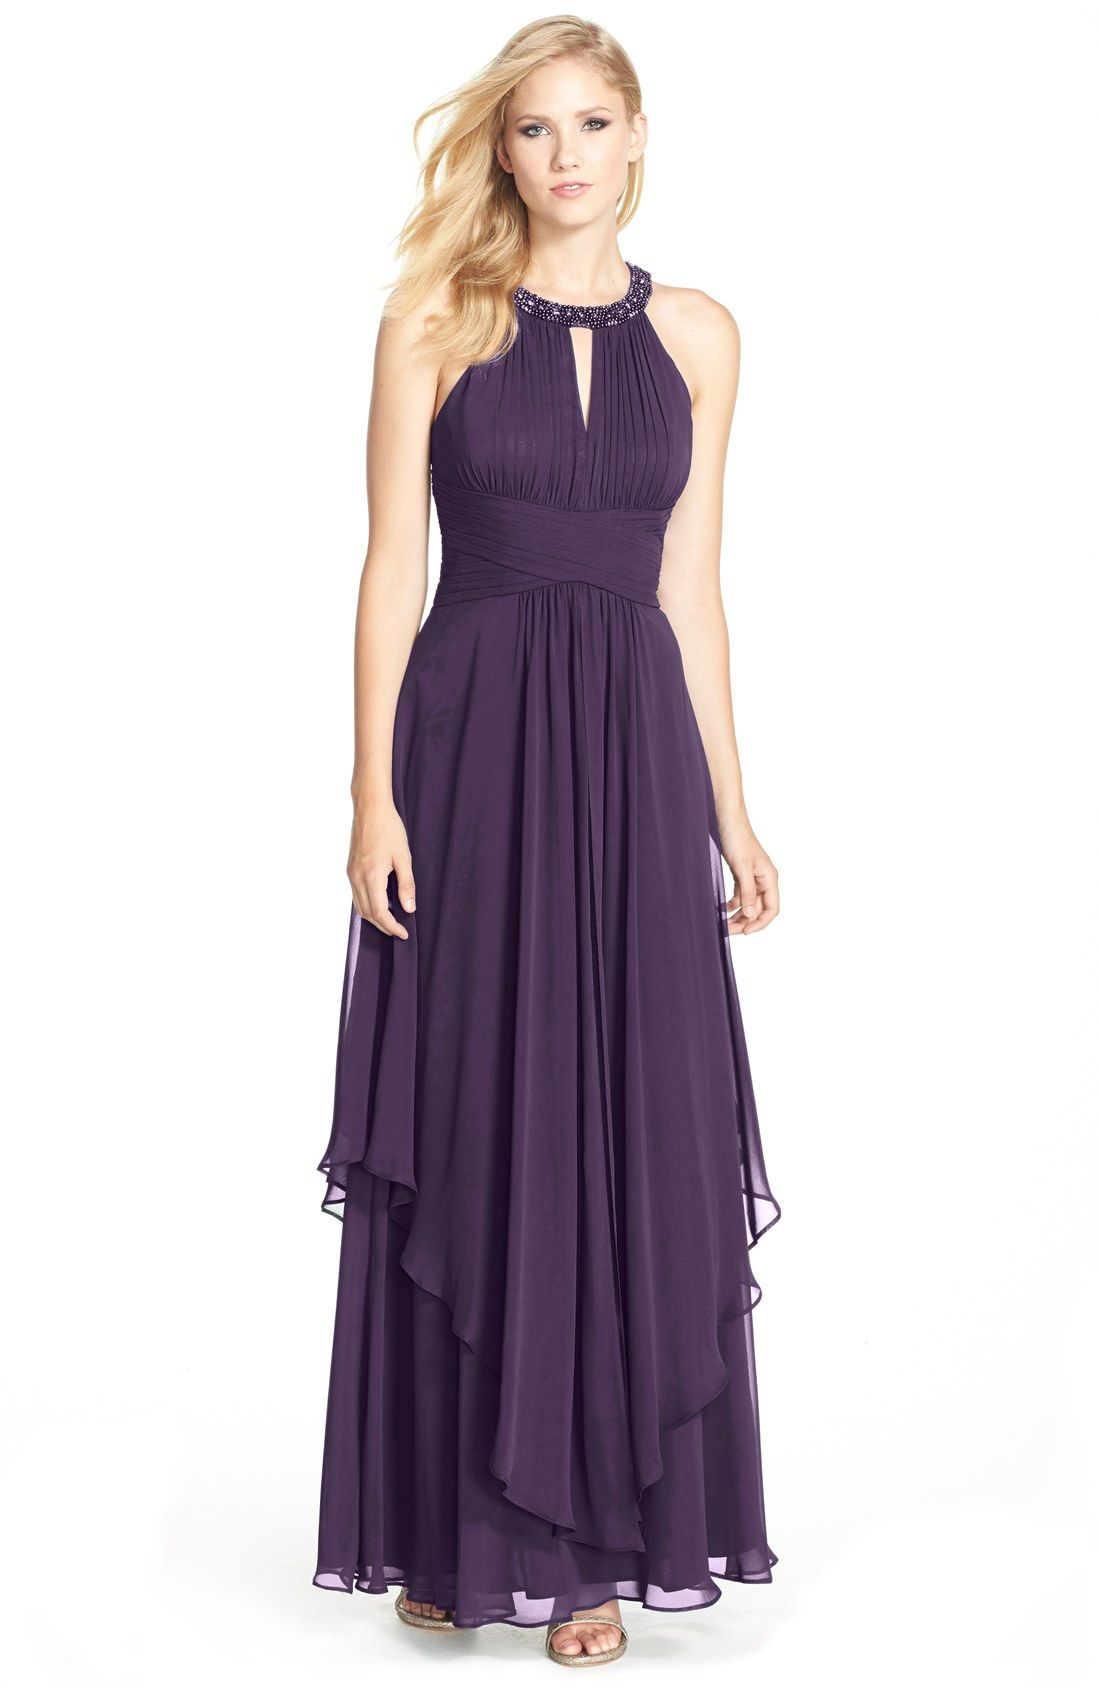 91d1aee27c44 Free shipping and returns on Eliza J Embellished Tiered Chiffon Halter Gown  at Nordstrom.com. An opulently embellished halter neckline anchors the  ruched ...